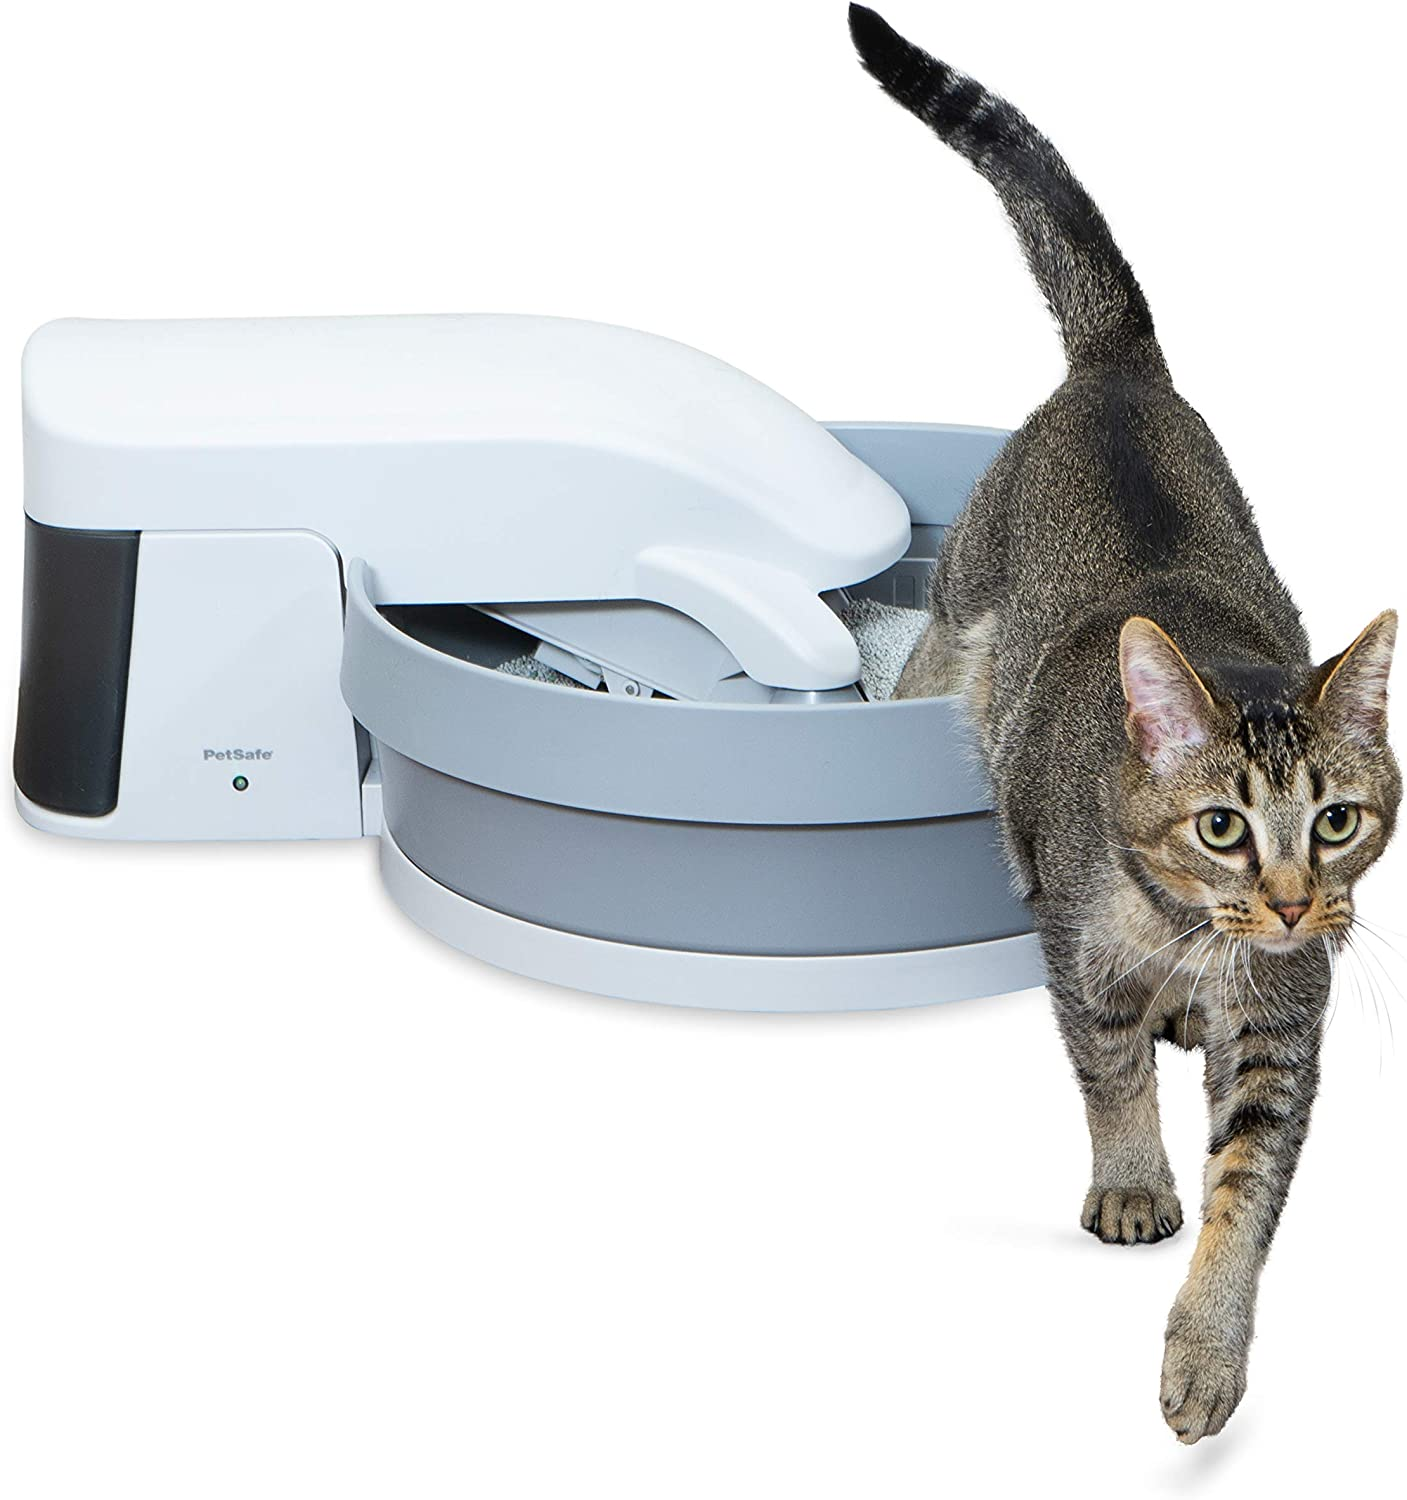 Top 10 Best Self Cleaning Litter Box For Large Cats [Updated November 2020] 8